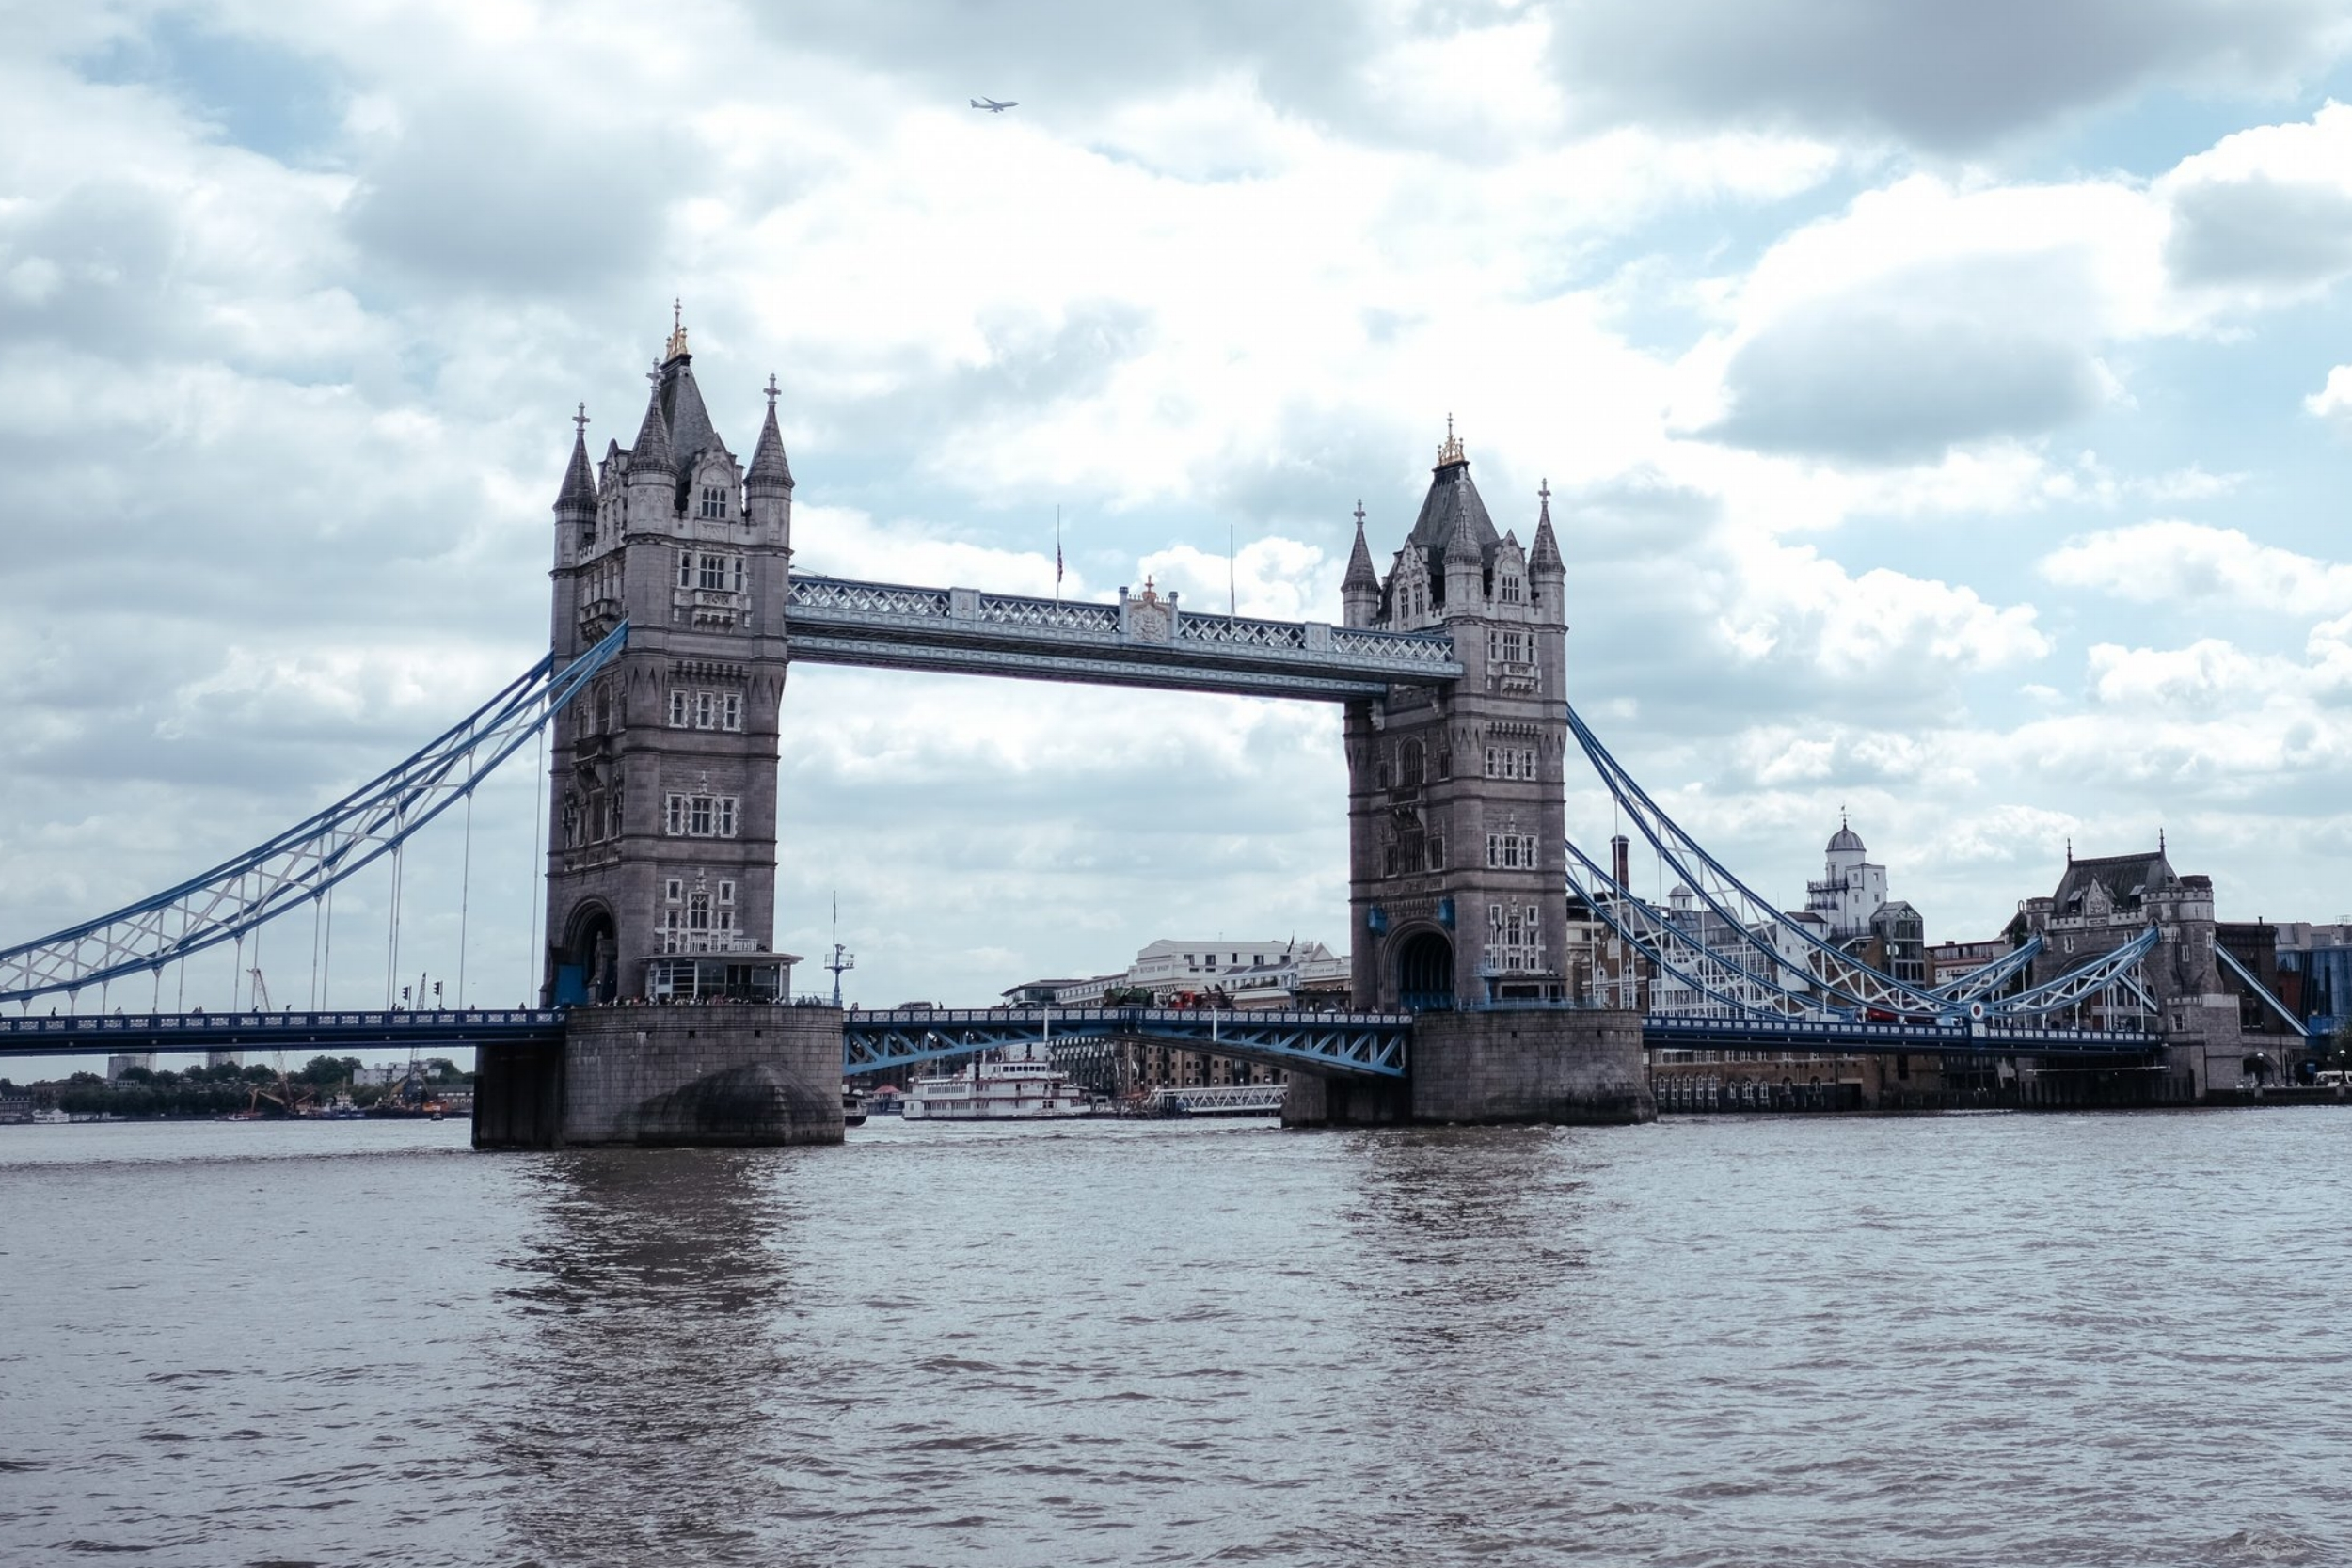 Day 15 London - Borough Market > Tower Bridge> Spitalfields Market > Shoreditch > BOXPARK